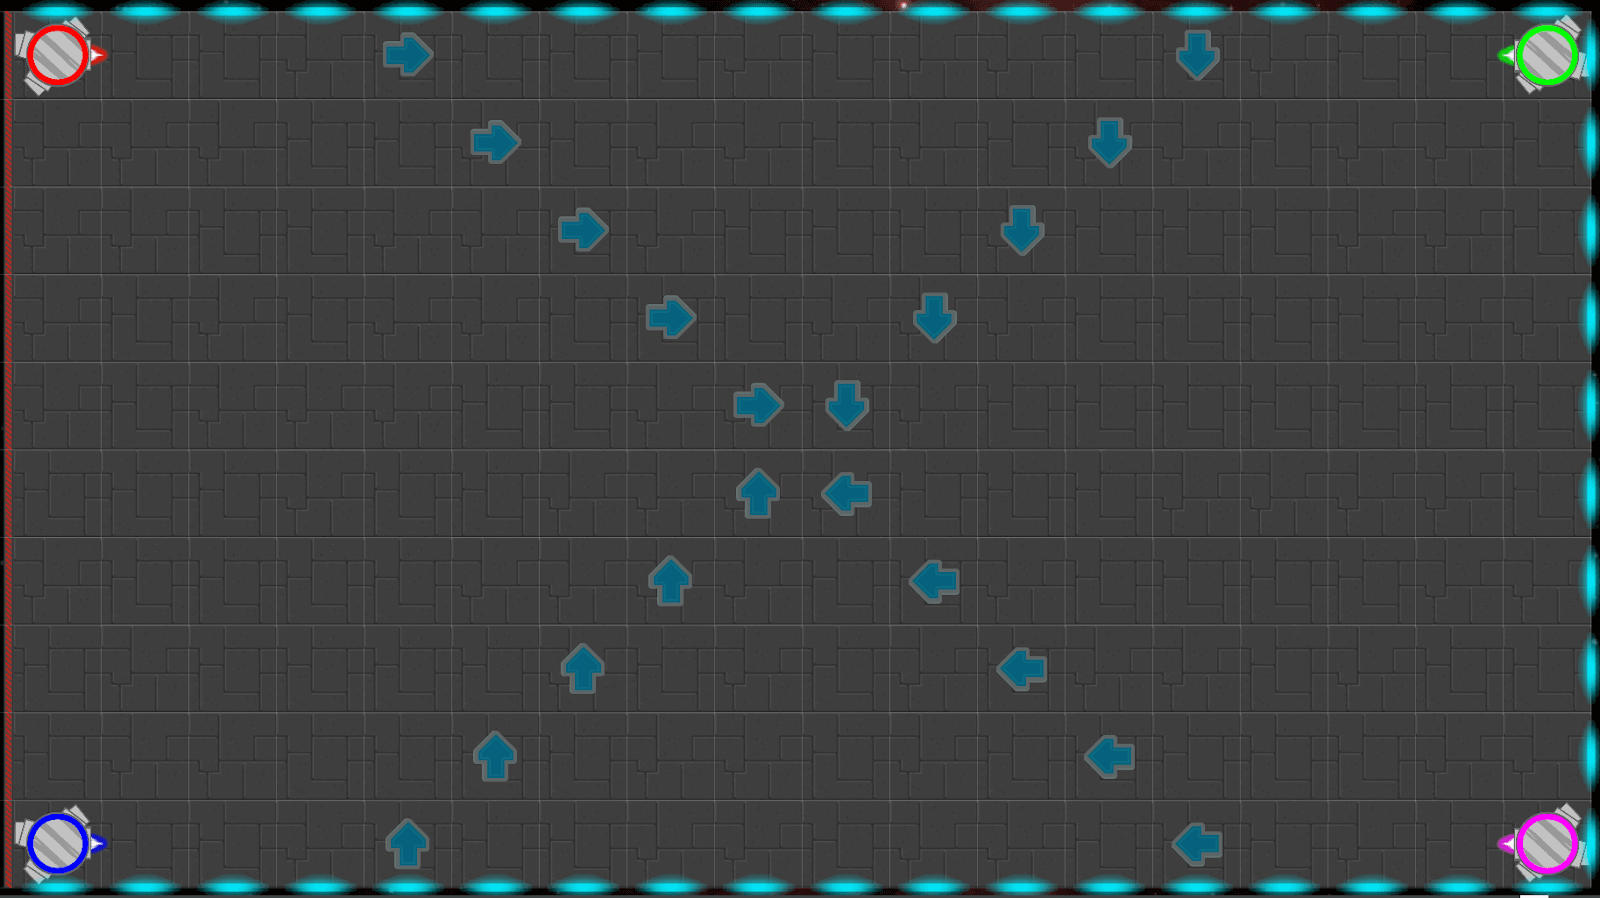 A*Craft board with no space tile